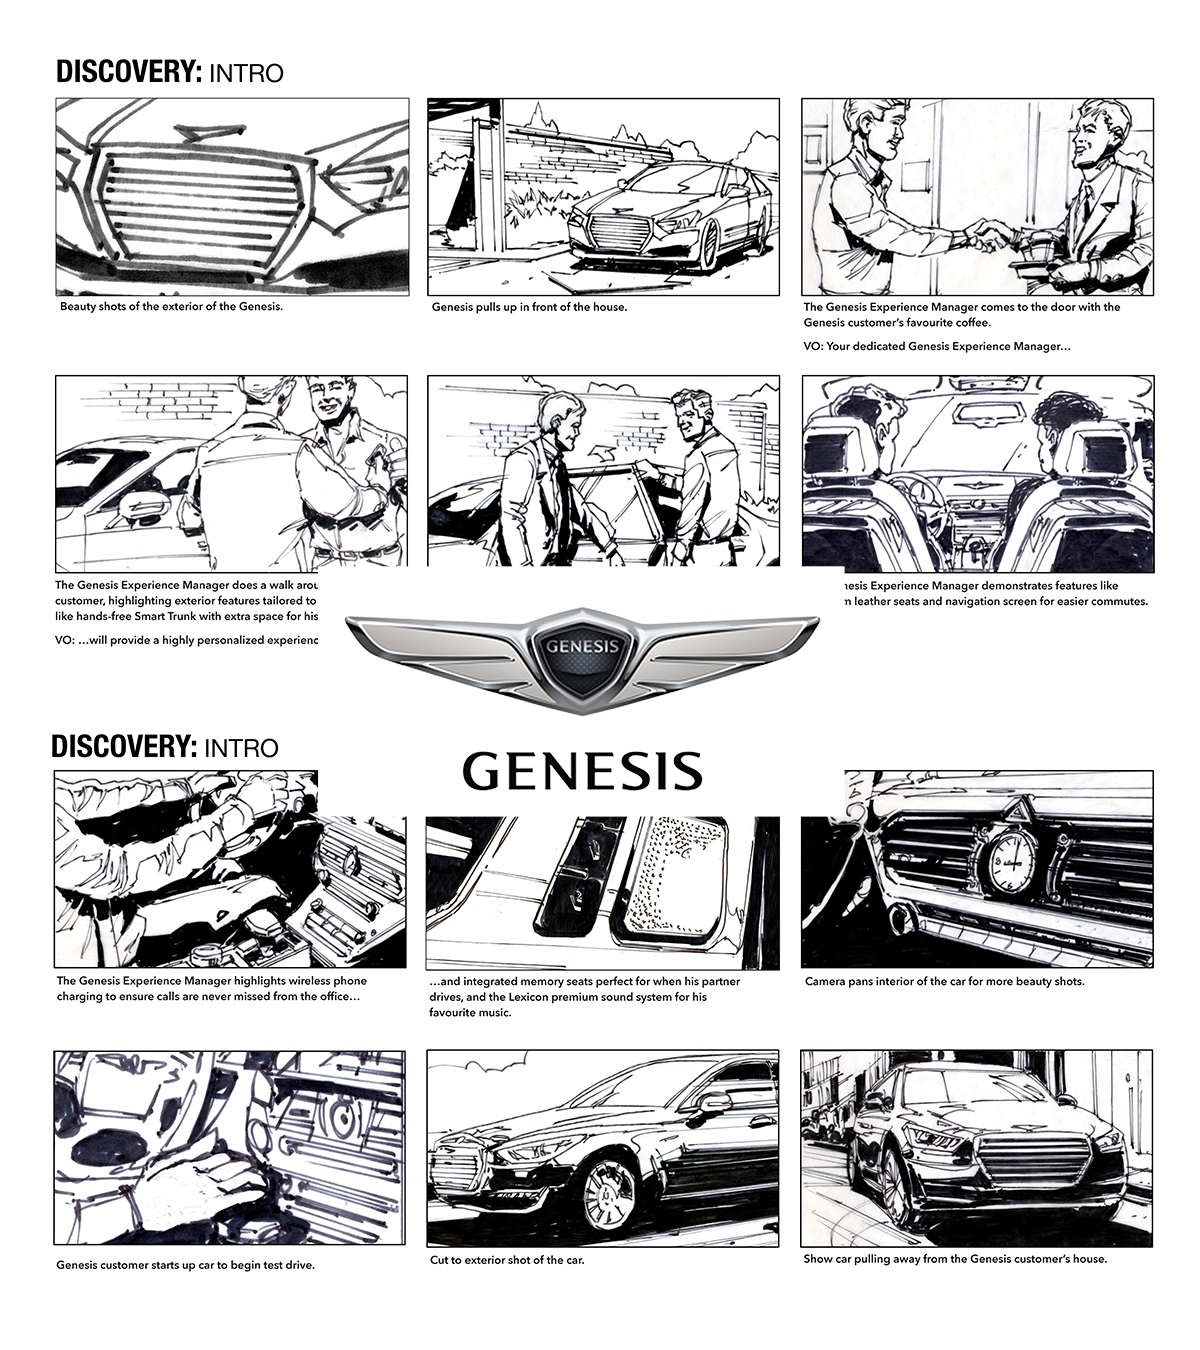 It's about time. - This was a series of videos for luxury car maker, Genesis. The campaign's tagline was